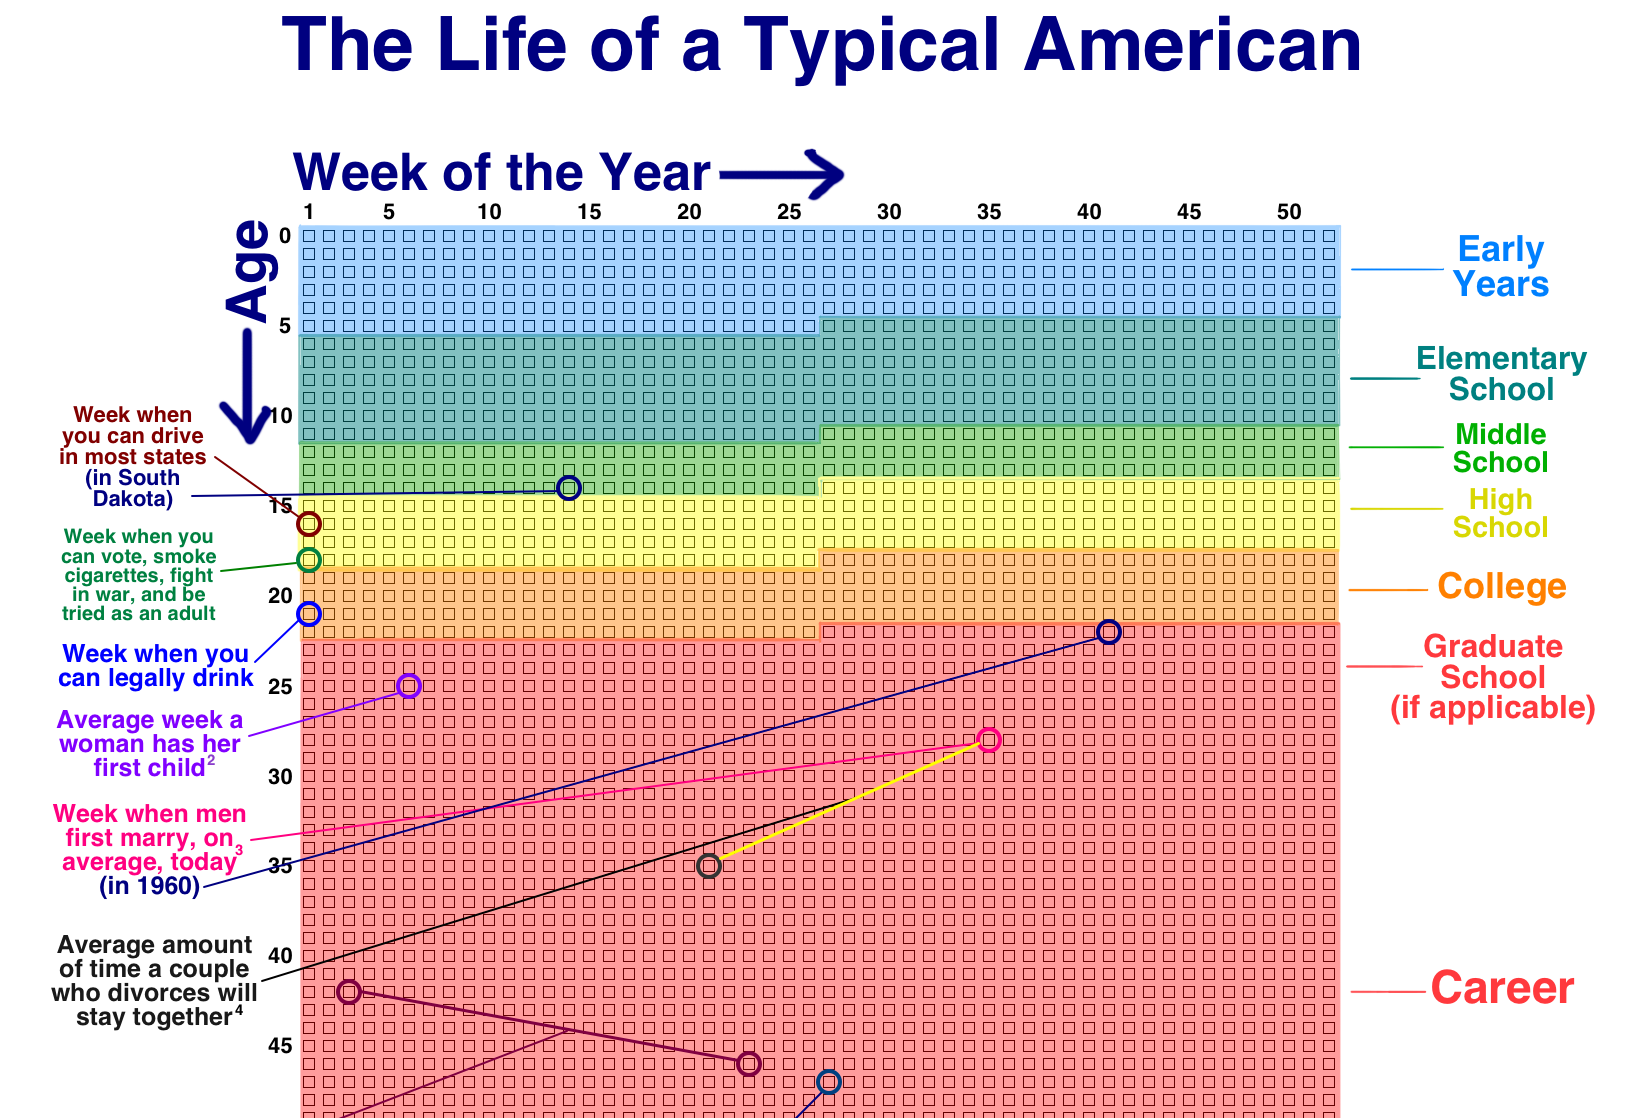 American Life in Weeks